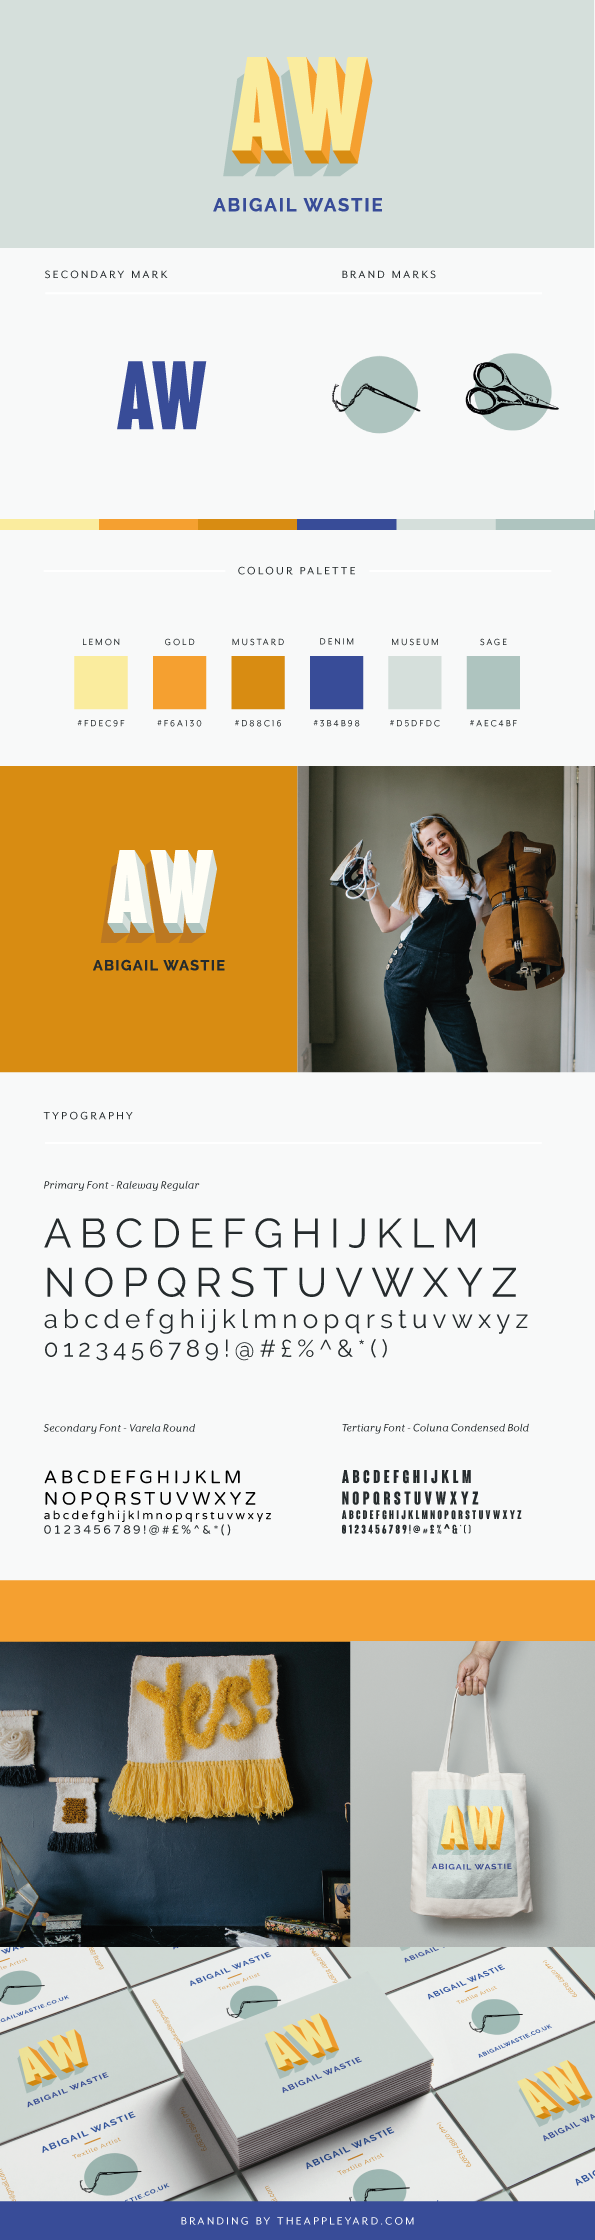 Abi's branding sheet for quick reference